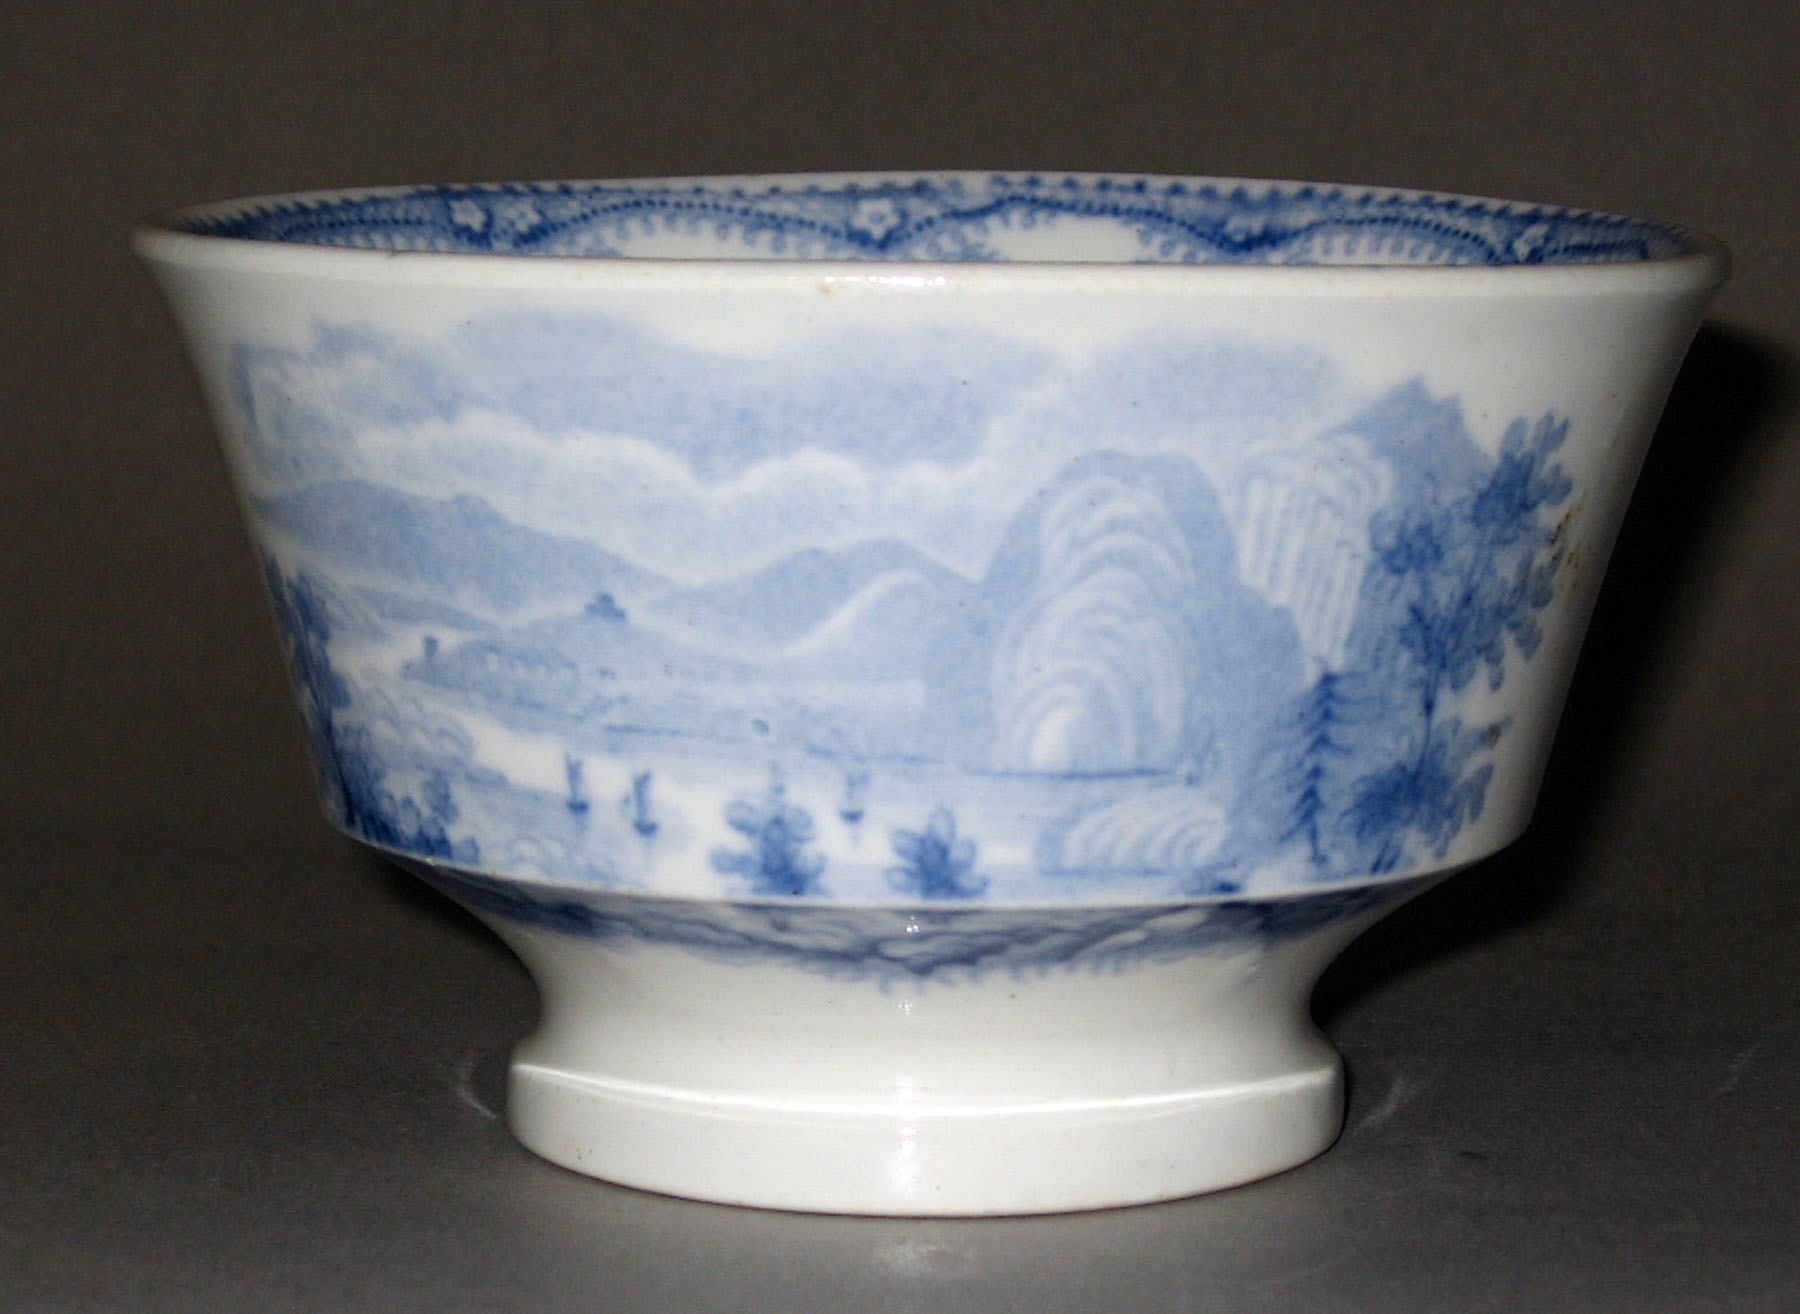 1965.2915.007 Ridgway earthenware tea bowl